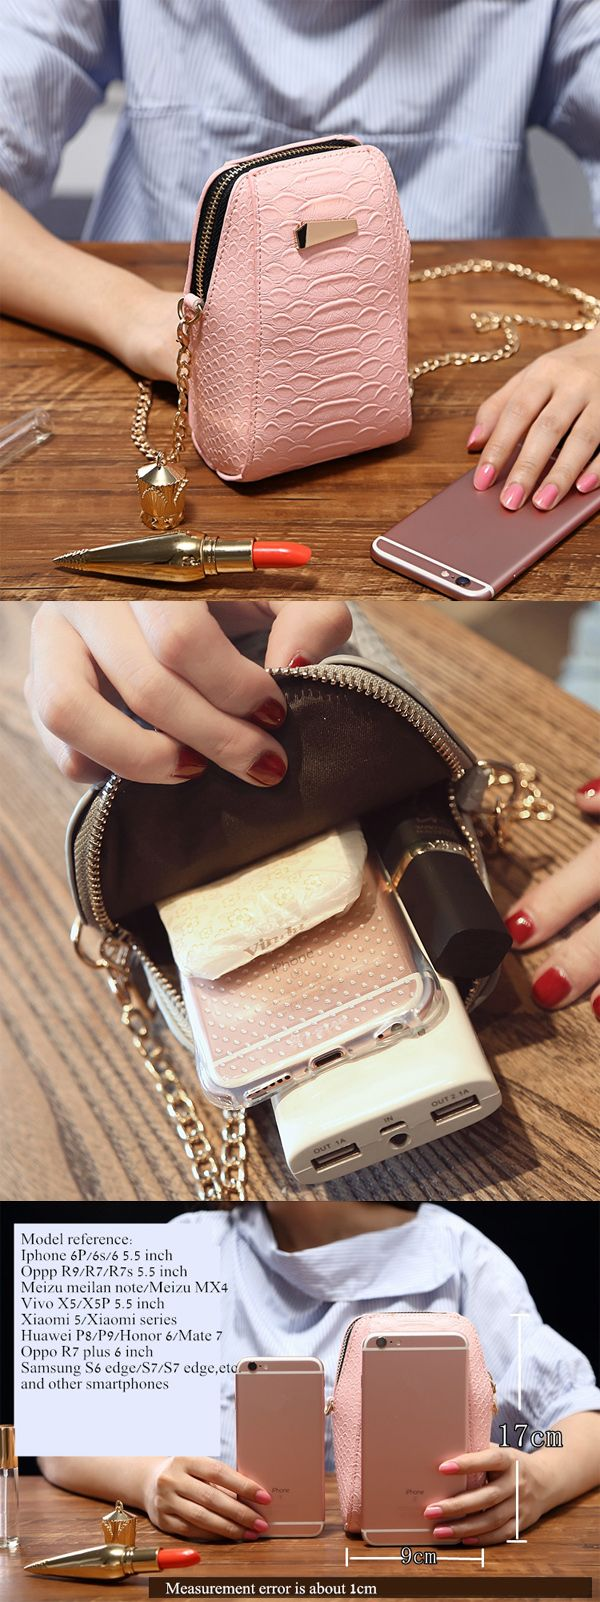 With a metal chain, as a shoulder bag.You can carry a smartphone, money and other tiny things.